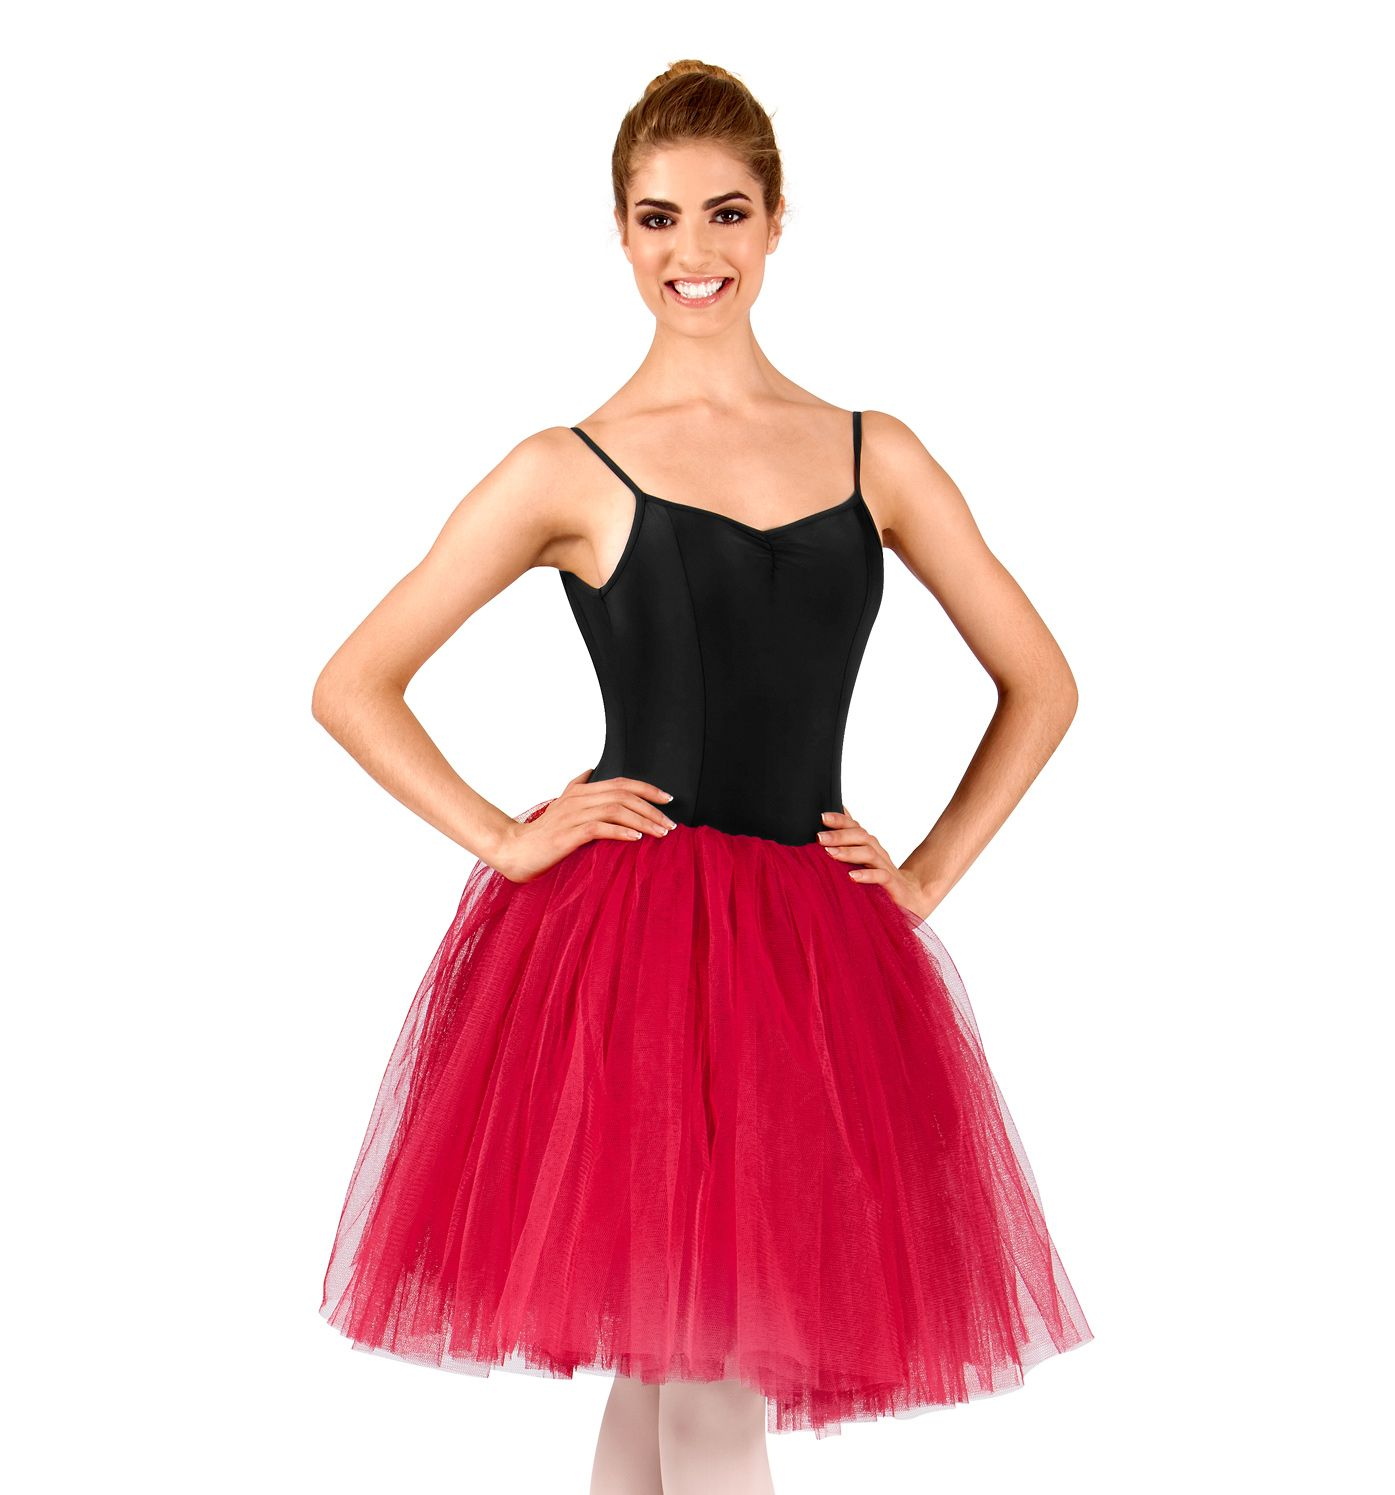 Tonia  Romantic Length Camisole Tutu Dress - Ballet/Lyrical - Tutus u0026 Skirts | DiscountDance.com.    sc 1 st  Pinterest & Adult